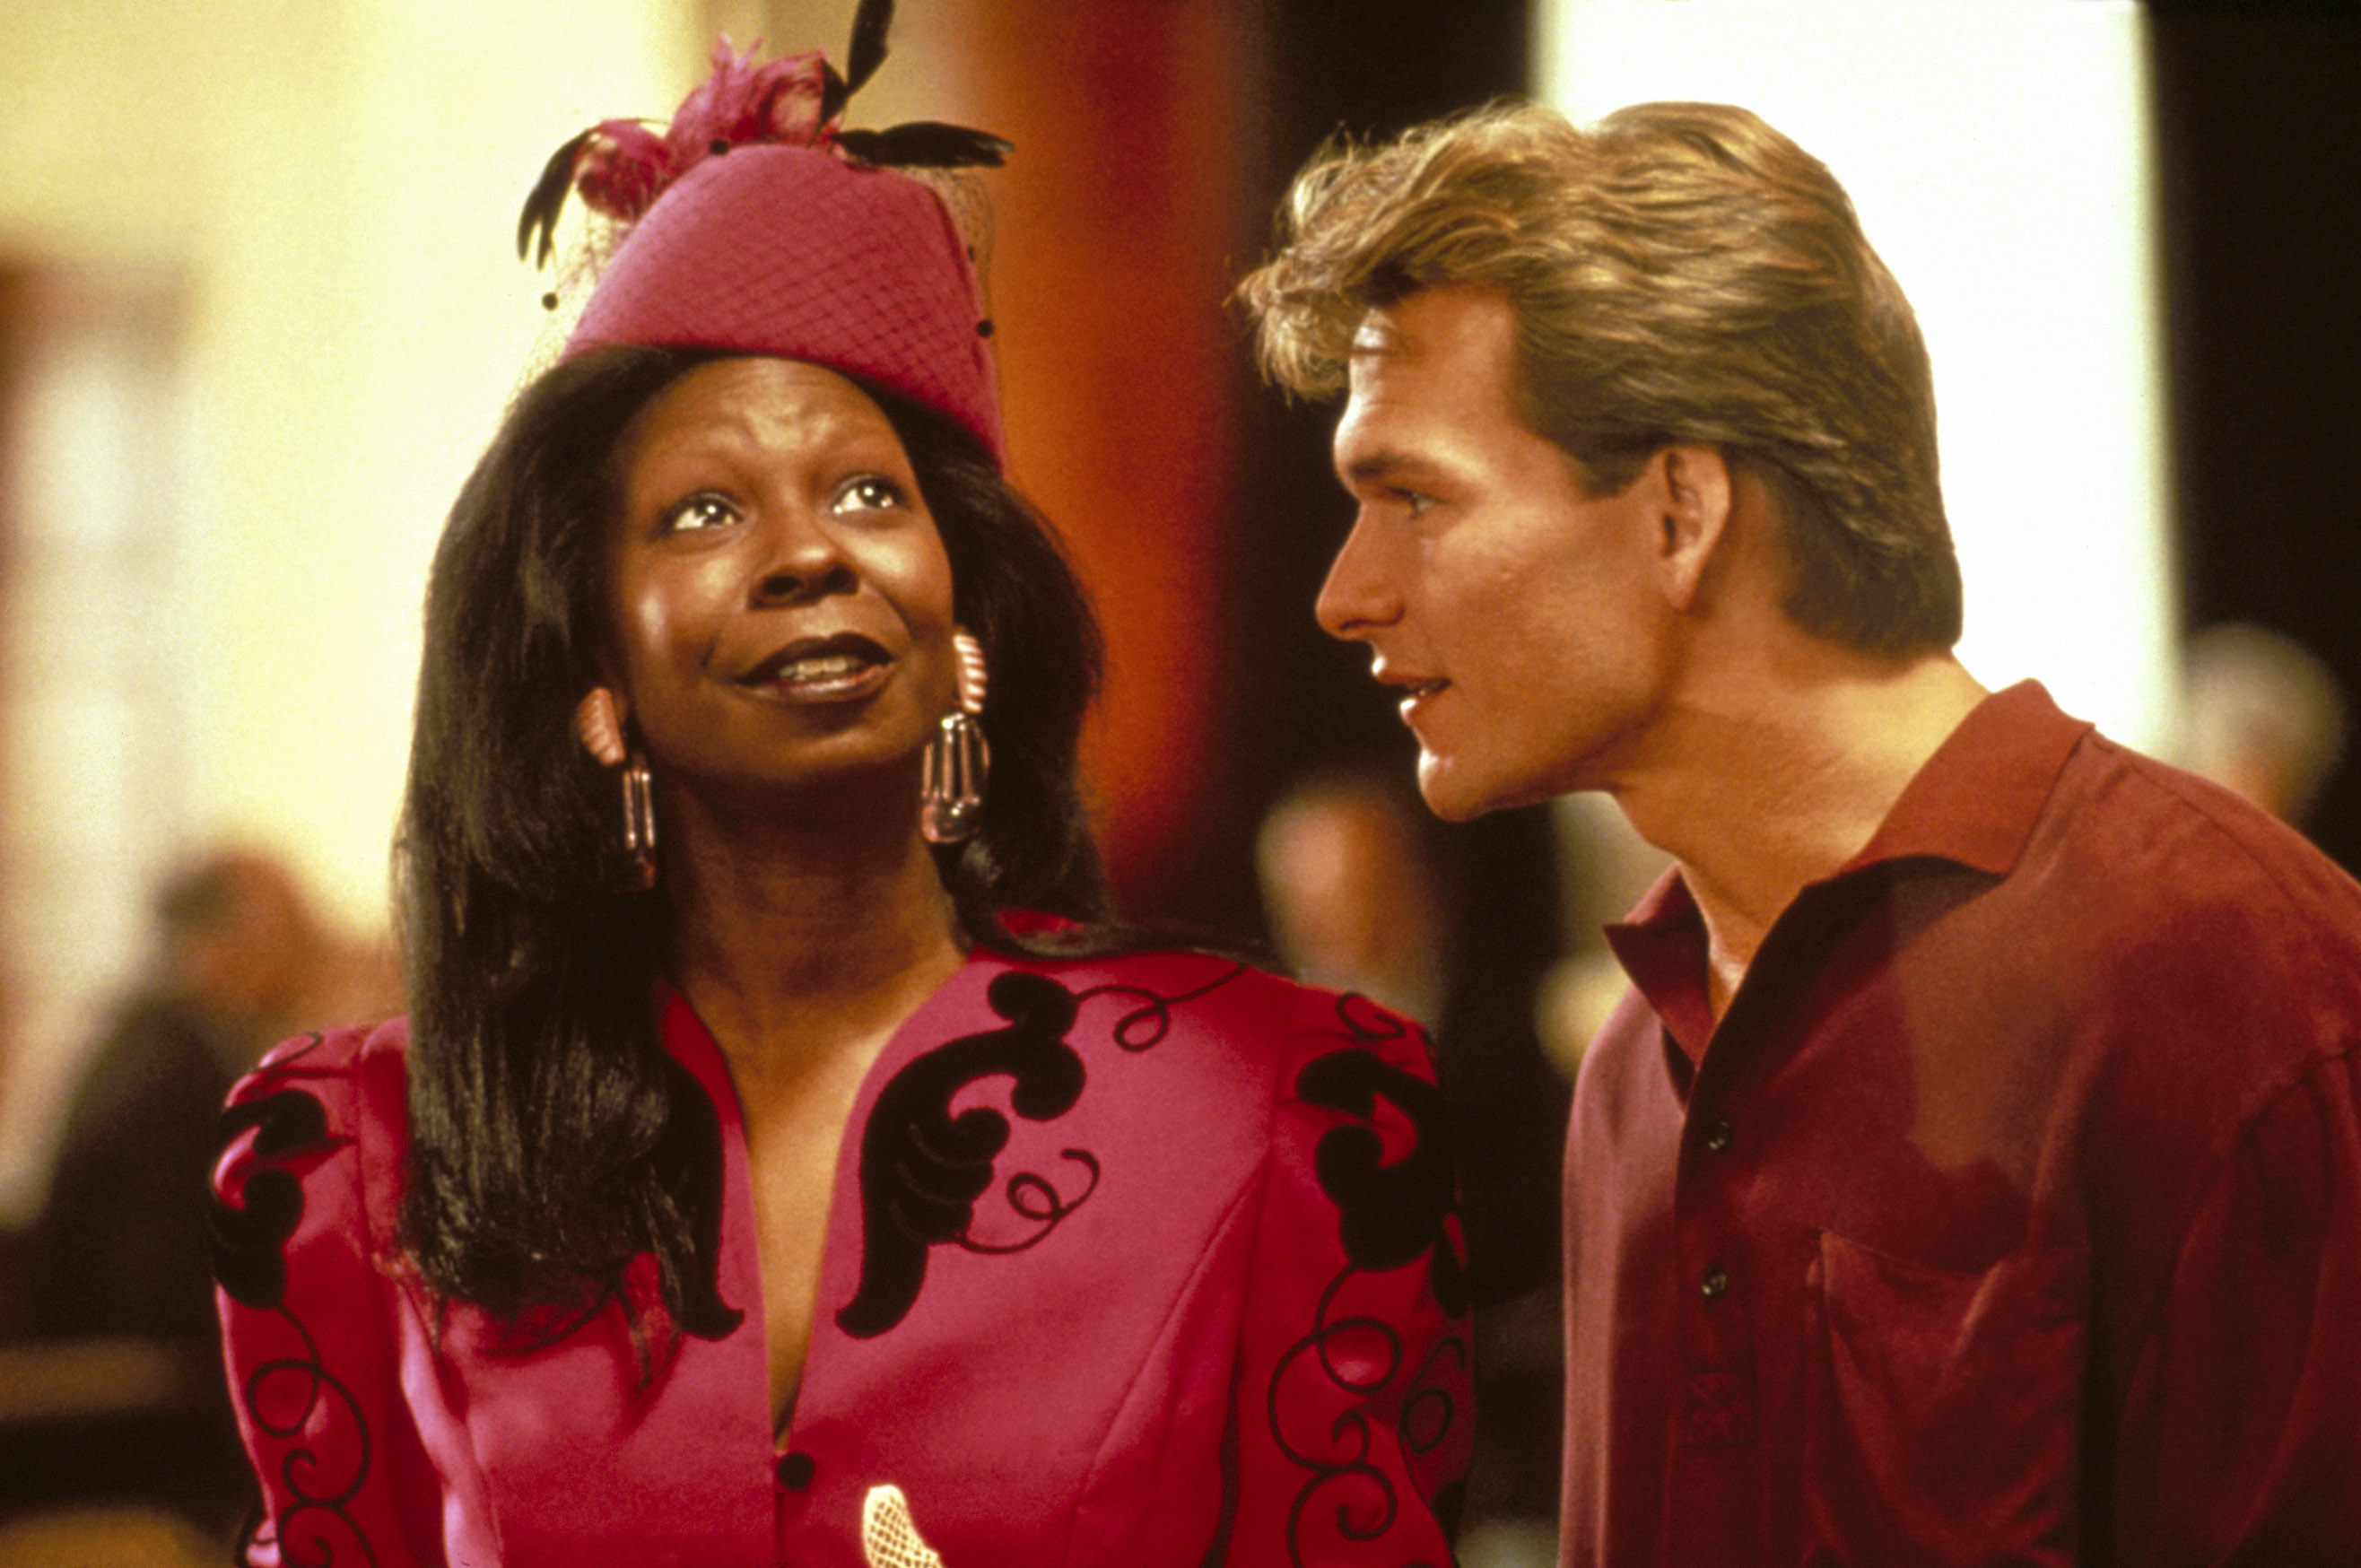 Whoopi with Patrick in the film